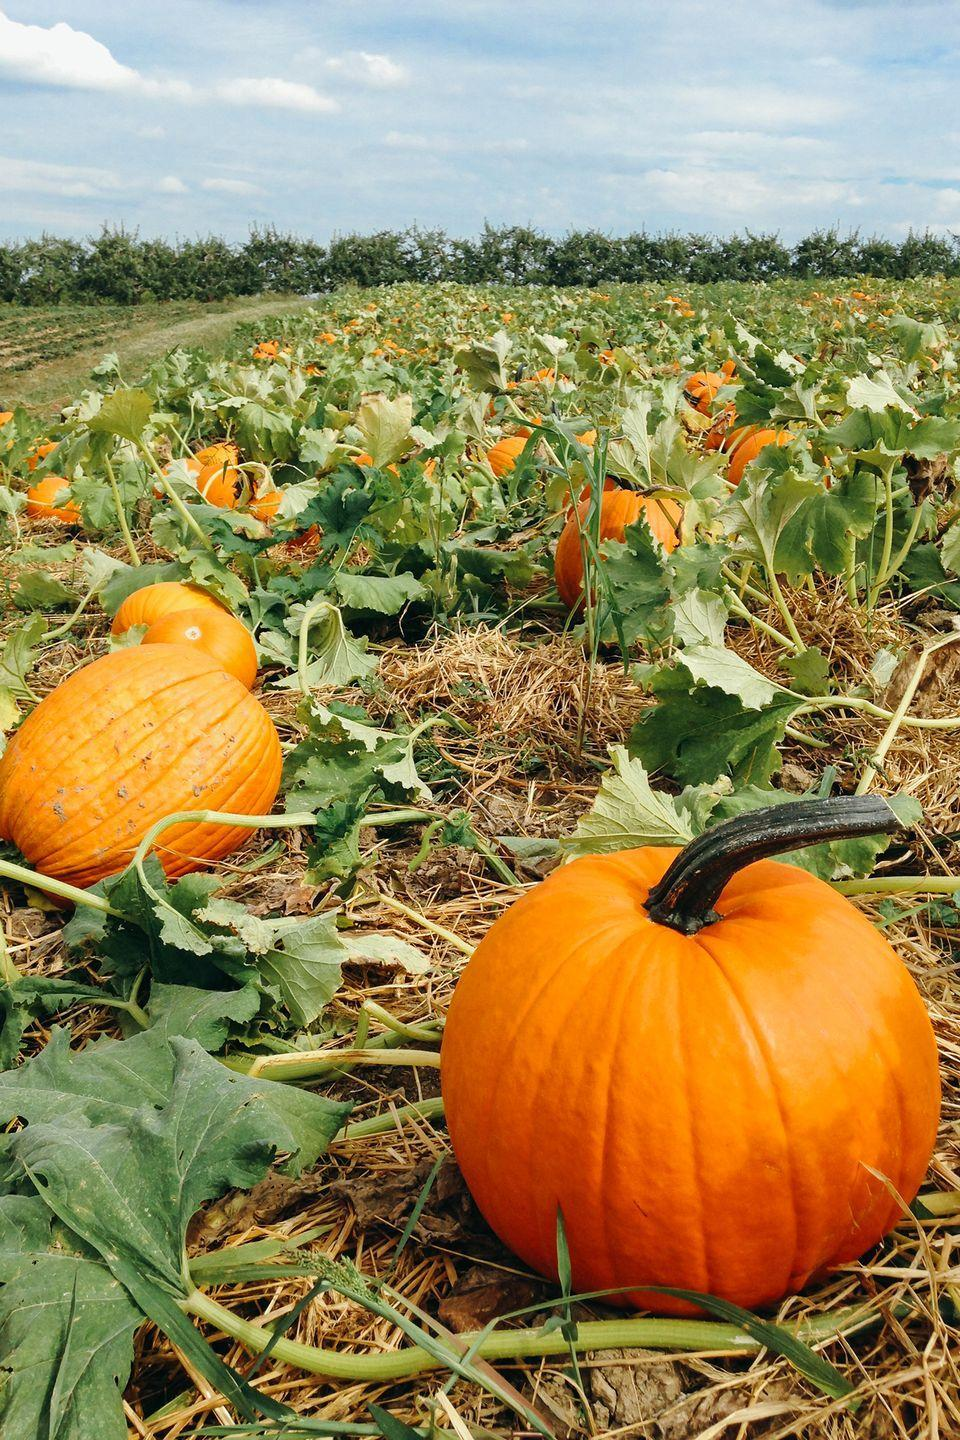 """<p><a href=""""https://mccallpumpkinpatch.com/"""" rel=""""nofollow noopener"""" target=""""_blank"""" data-ylk=""""slk:McCall's"""" class=""""link rapid-noclick-resp"""">McCall's</a> has it all! With an impressive pumpkin patch, 16-acre corn maze, scenic hay rides, produce market, and more, you can check everything off your <a href=""""https://www.countryliving.com/life/g2633/fall-bucket-list/"""" rel=""""nofollow noopener"""" target=""""_blank"""" data-ylk=""""slk:fall bucket list"""" class=""""link rapid-noclick-resp"""">fall bucket list</a> in one place.</p><p><a class=""""link rapid-noclick-resp"""" href=""""https://go.redirectingat.com?id=74968X1596630&url=https%3A%2F%2Fwww.tripadvisor.com%2FAttraction_Review-g47127-d11444328-Reviews-McCall_s_Pumpkin_Patch-Moriarty_New_Mexico.html&sref=https%3A%2F%2Fwww.countryliving.com%2Flife%2Ftravel%2Fg21273436%2Fpumpkin-farms-near-me%2F"""" rel=""""nofollow noopener"""" target=""""_blank"""" data-ylk=""""slk:PLAN YOUR TRIP"""">PLAN YOUR TRIP</a></p>"""